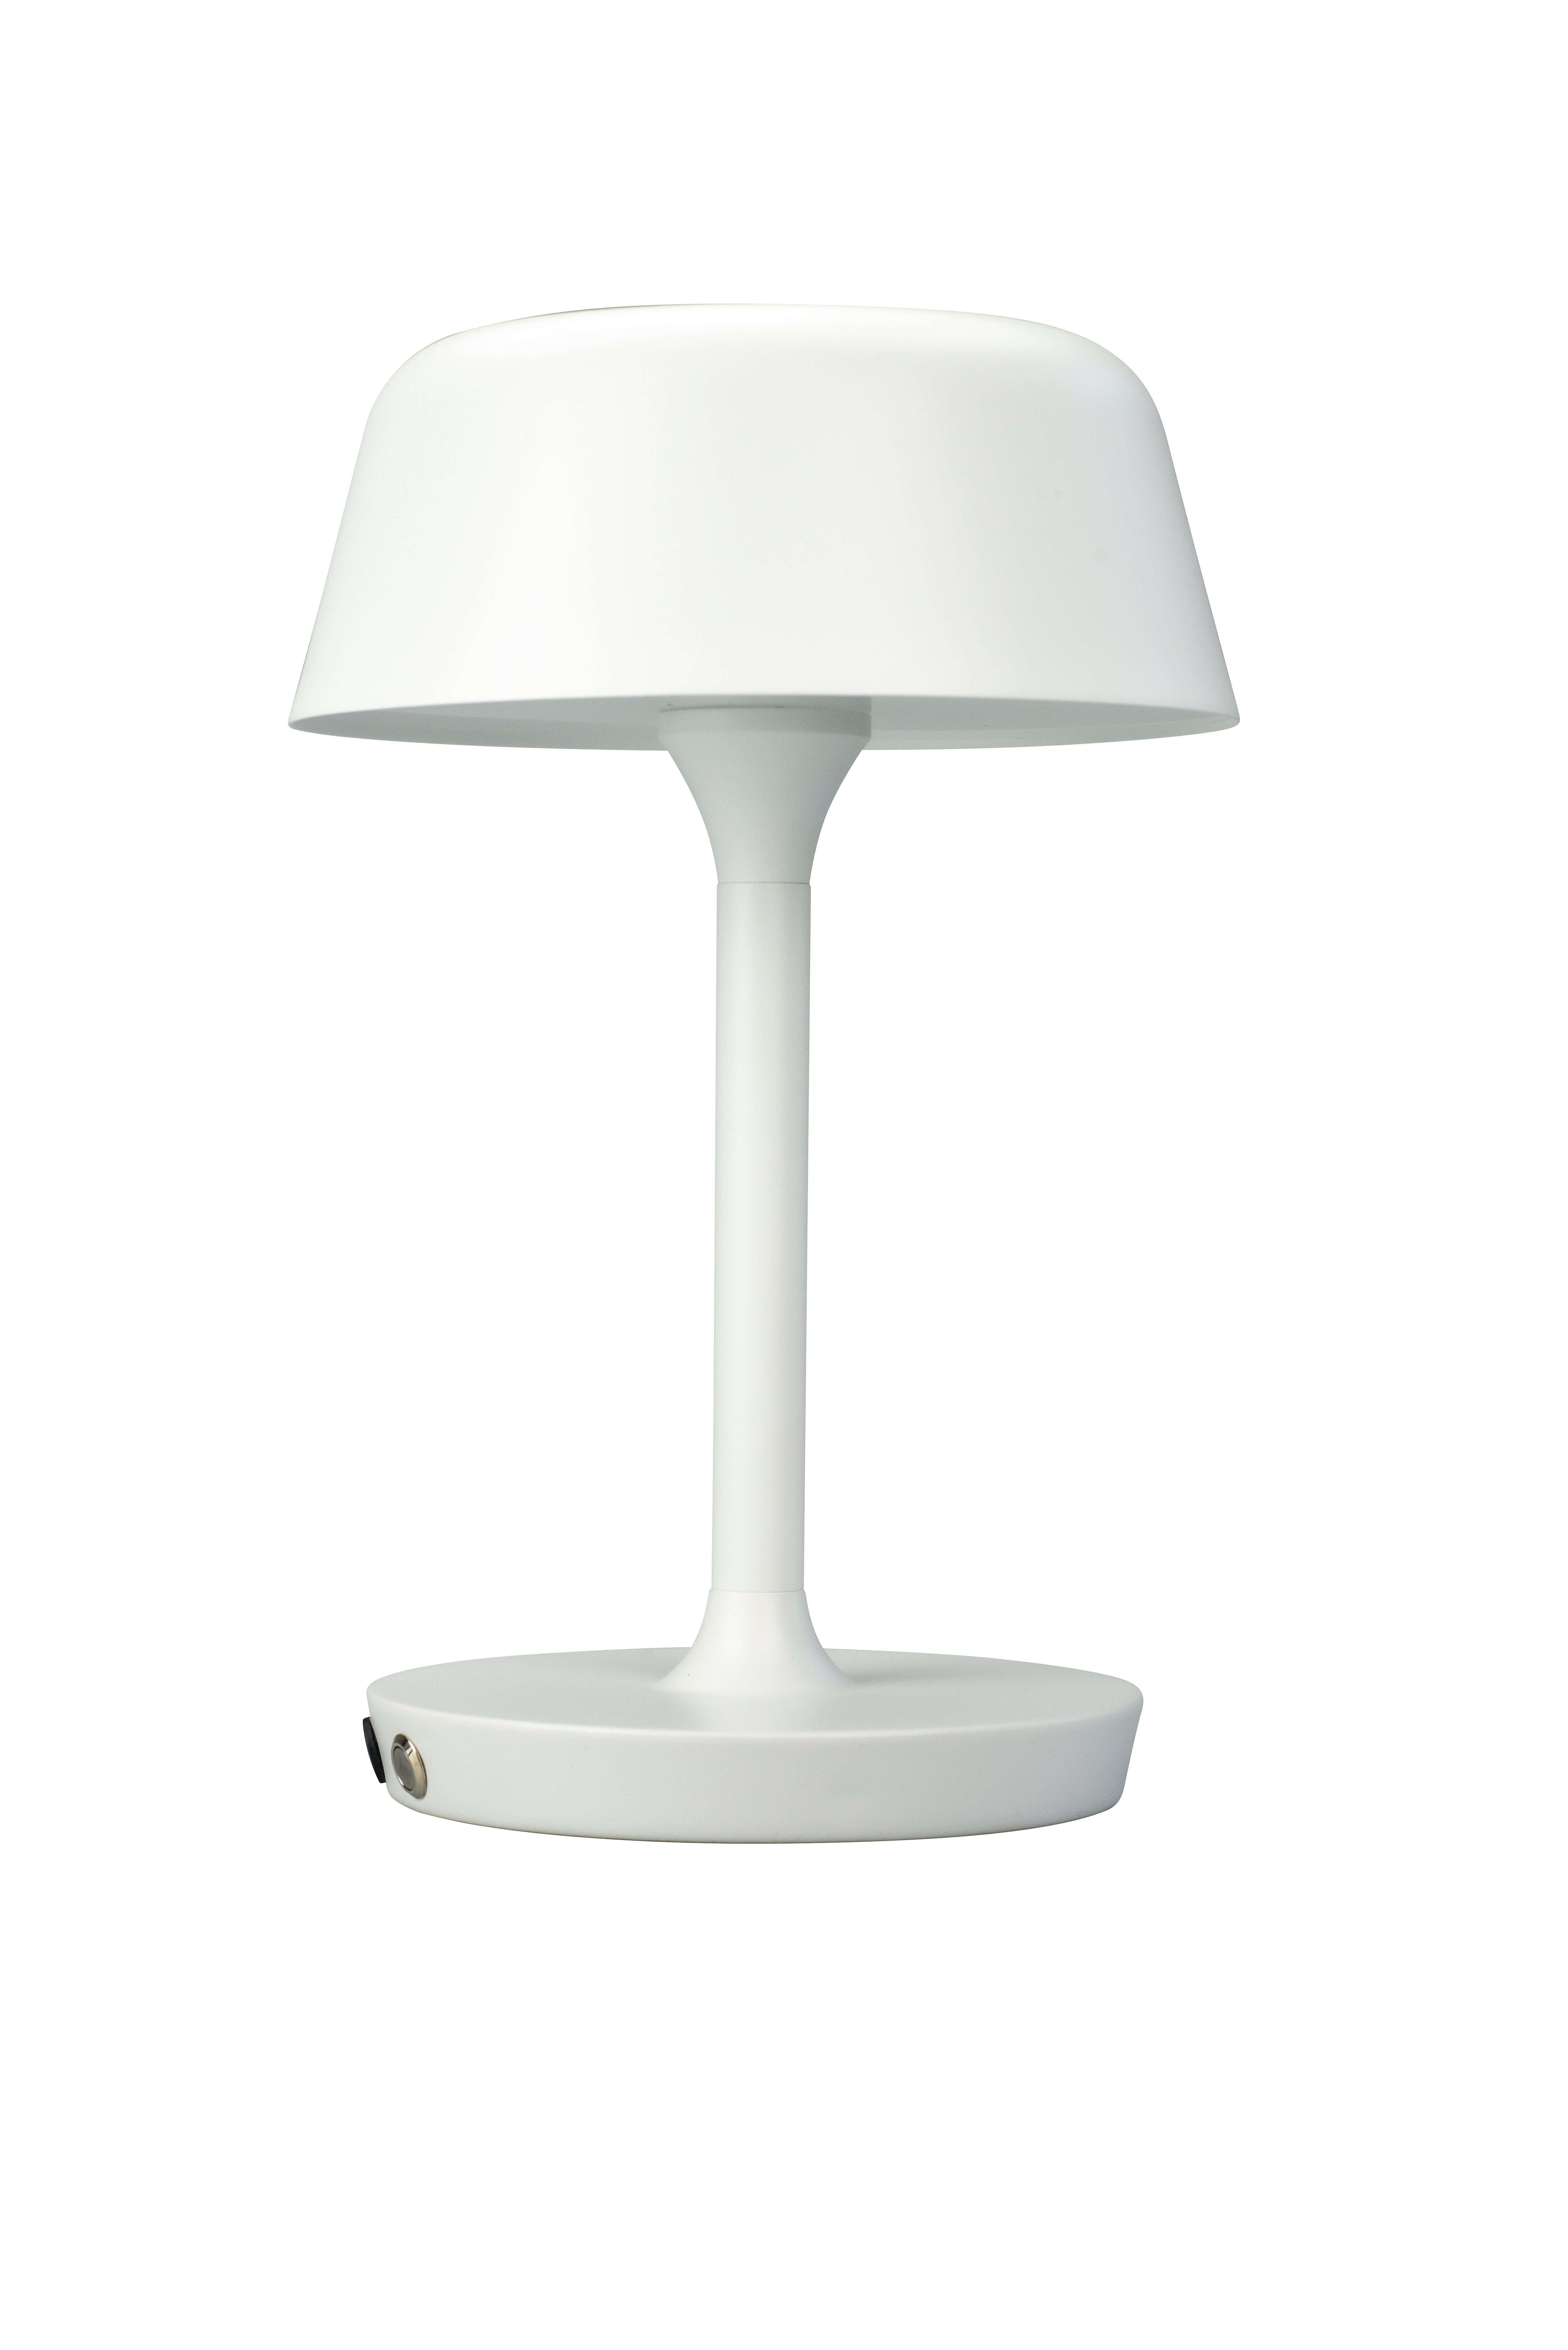 Dyberg-Larsen - Valencia LED Table Lamp Rechageable 350 LM - White (7120)